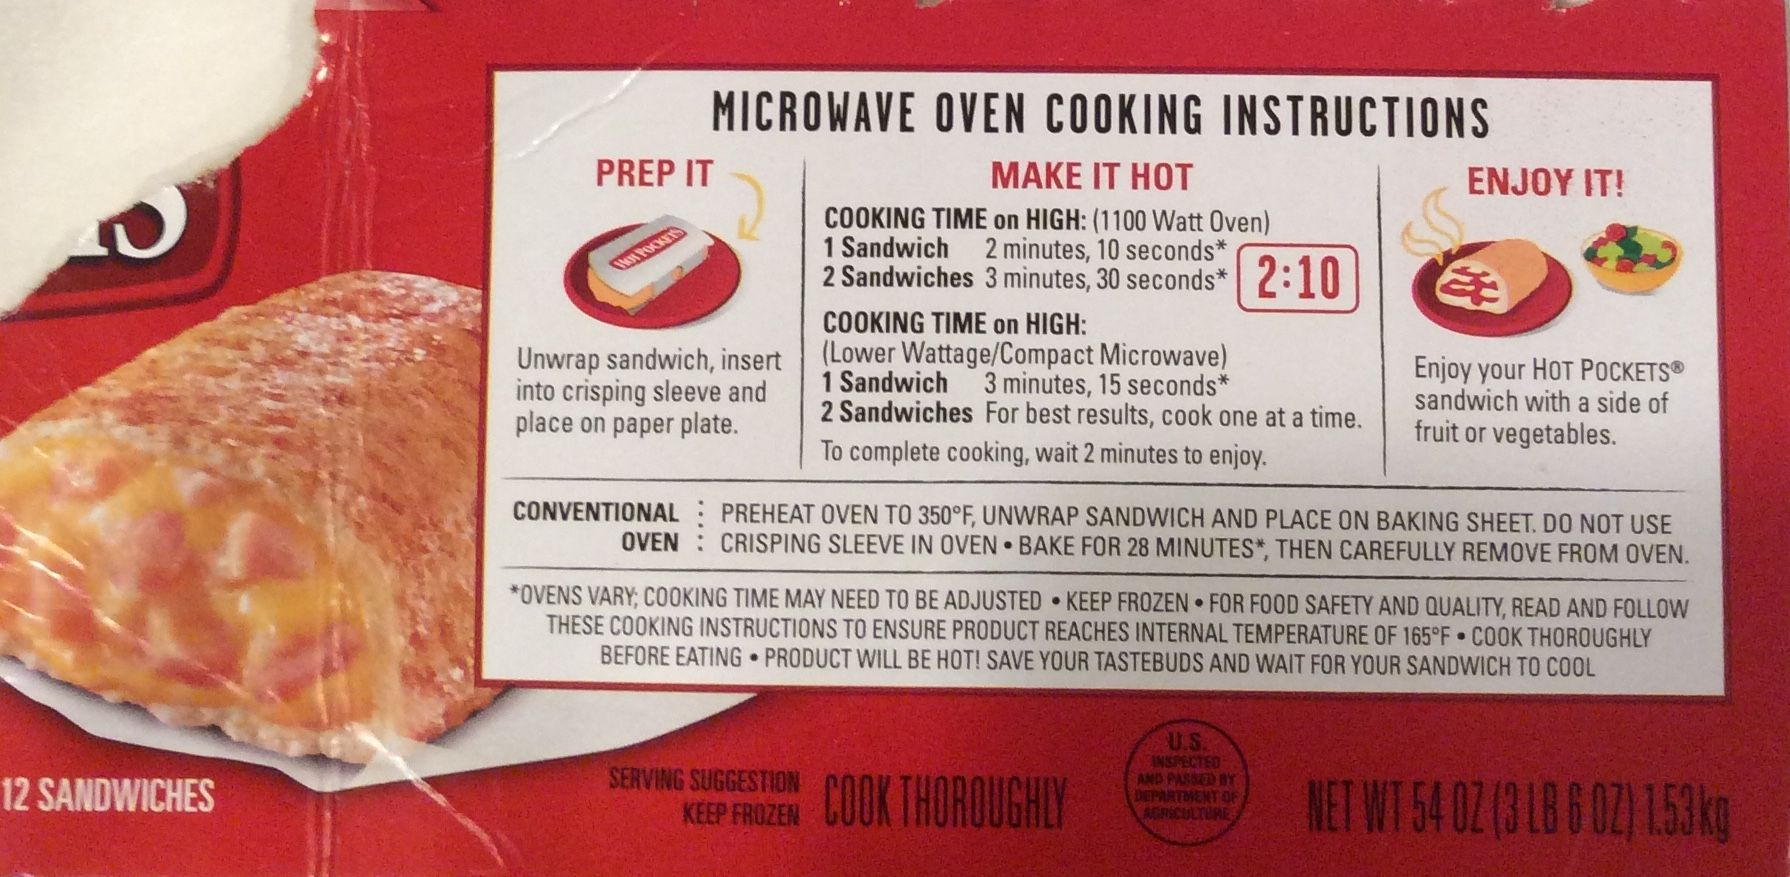 cooking instructions cooking oven cooking